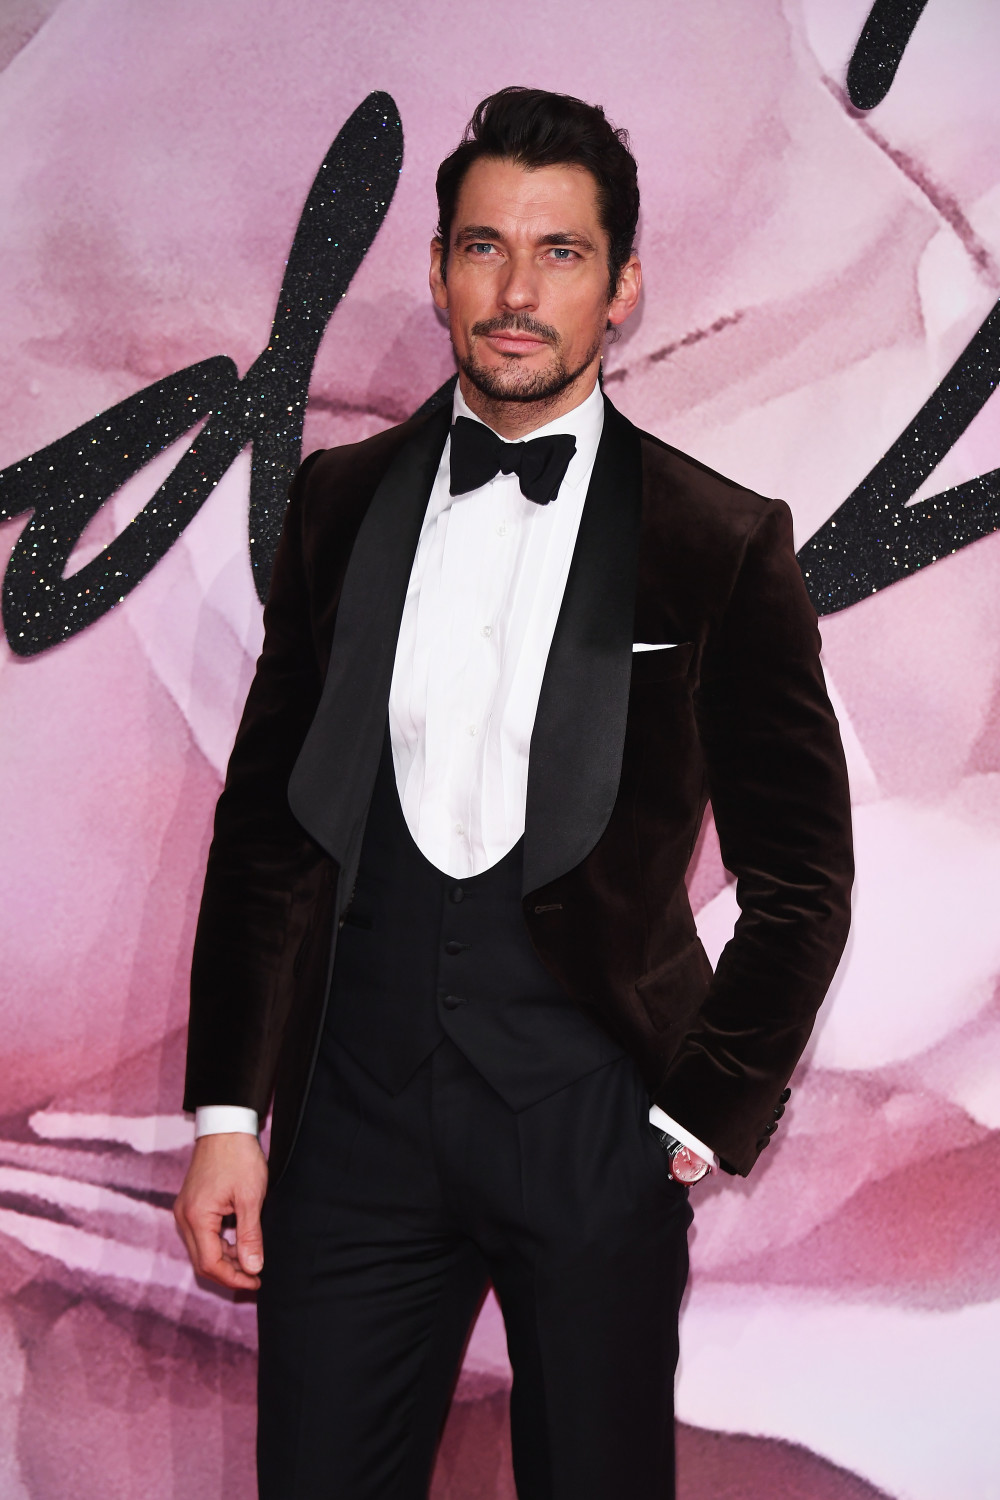 LONDON, ENGLAND - DECEMBER 05: Model David Gandy attends The Fashion Awards 2016 on December 5, 2016 in London, United Kingdom. (Photo by Venturelli/Getty Images for GUCCI)